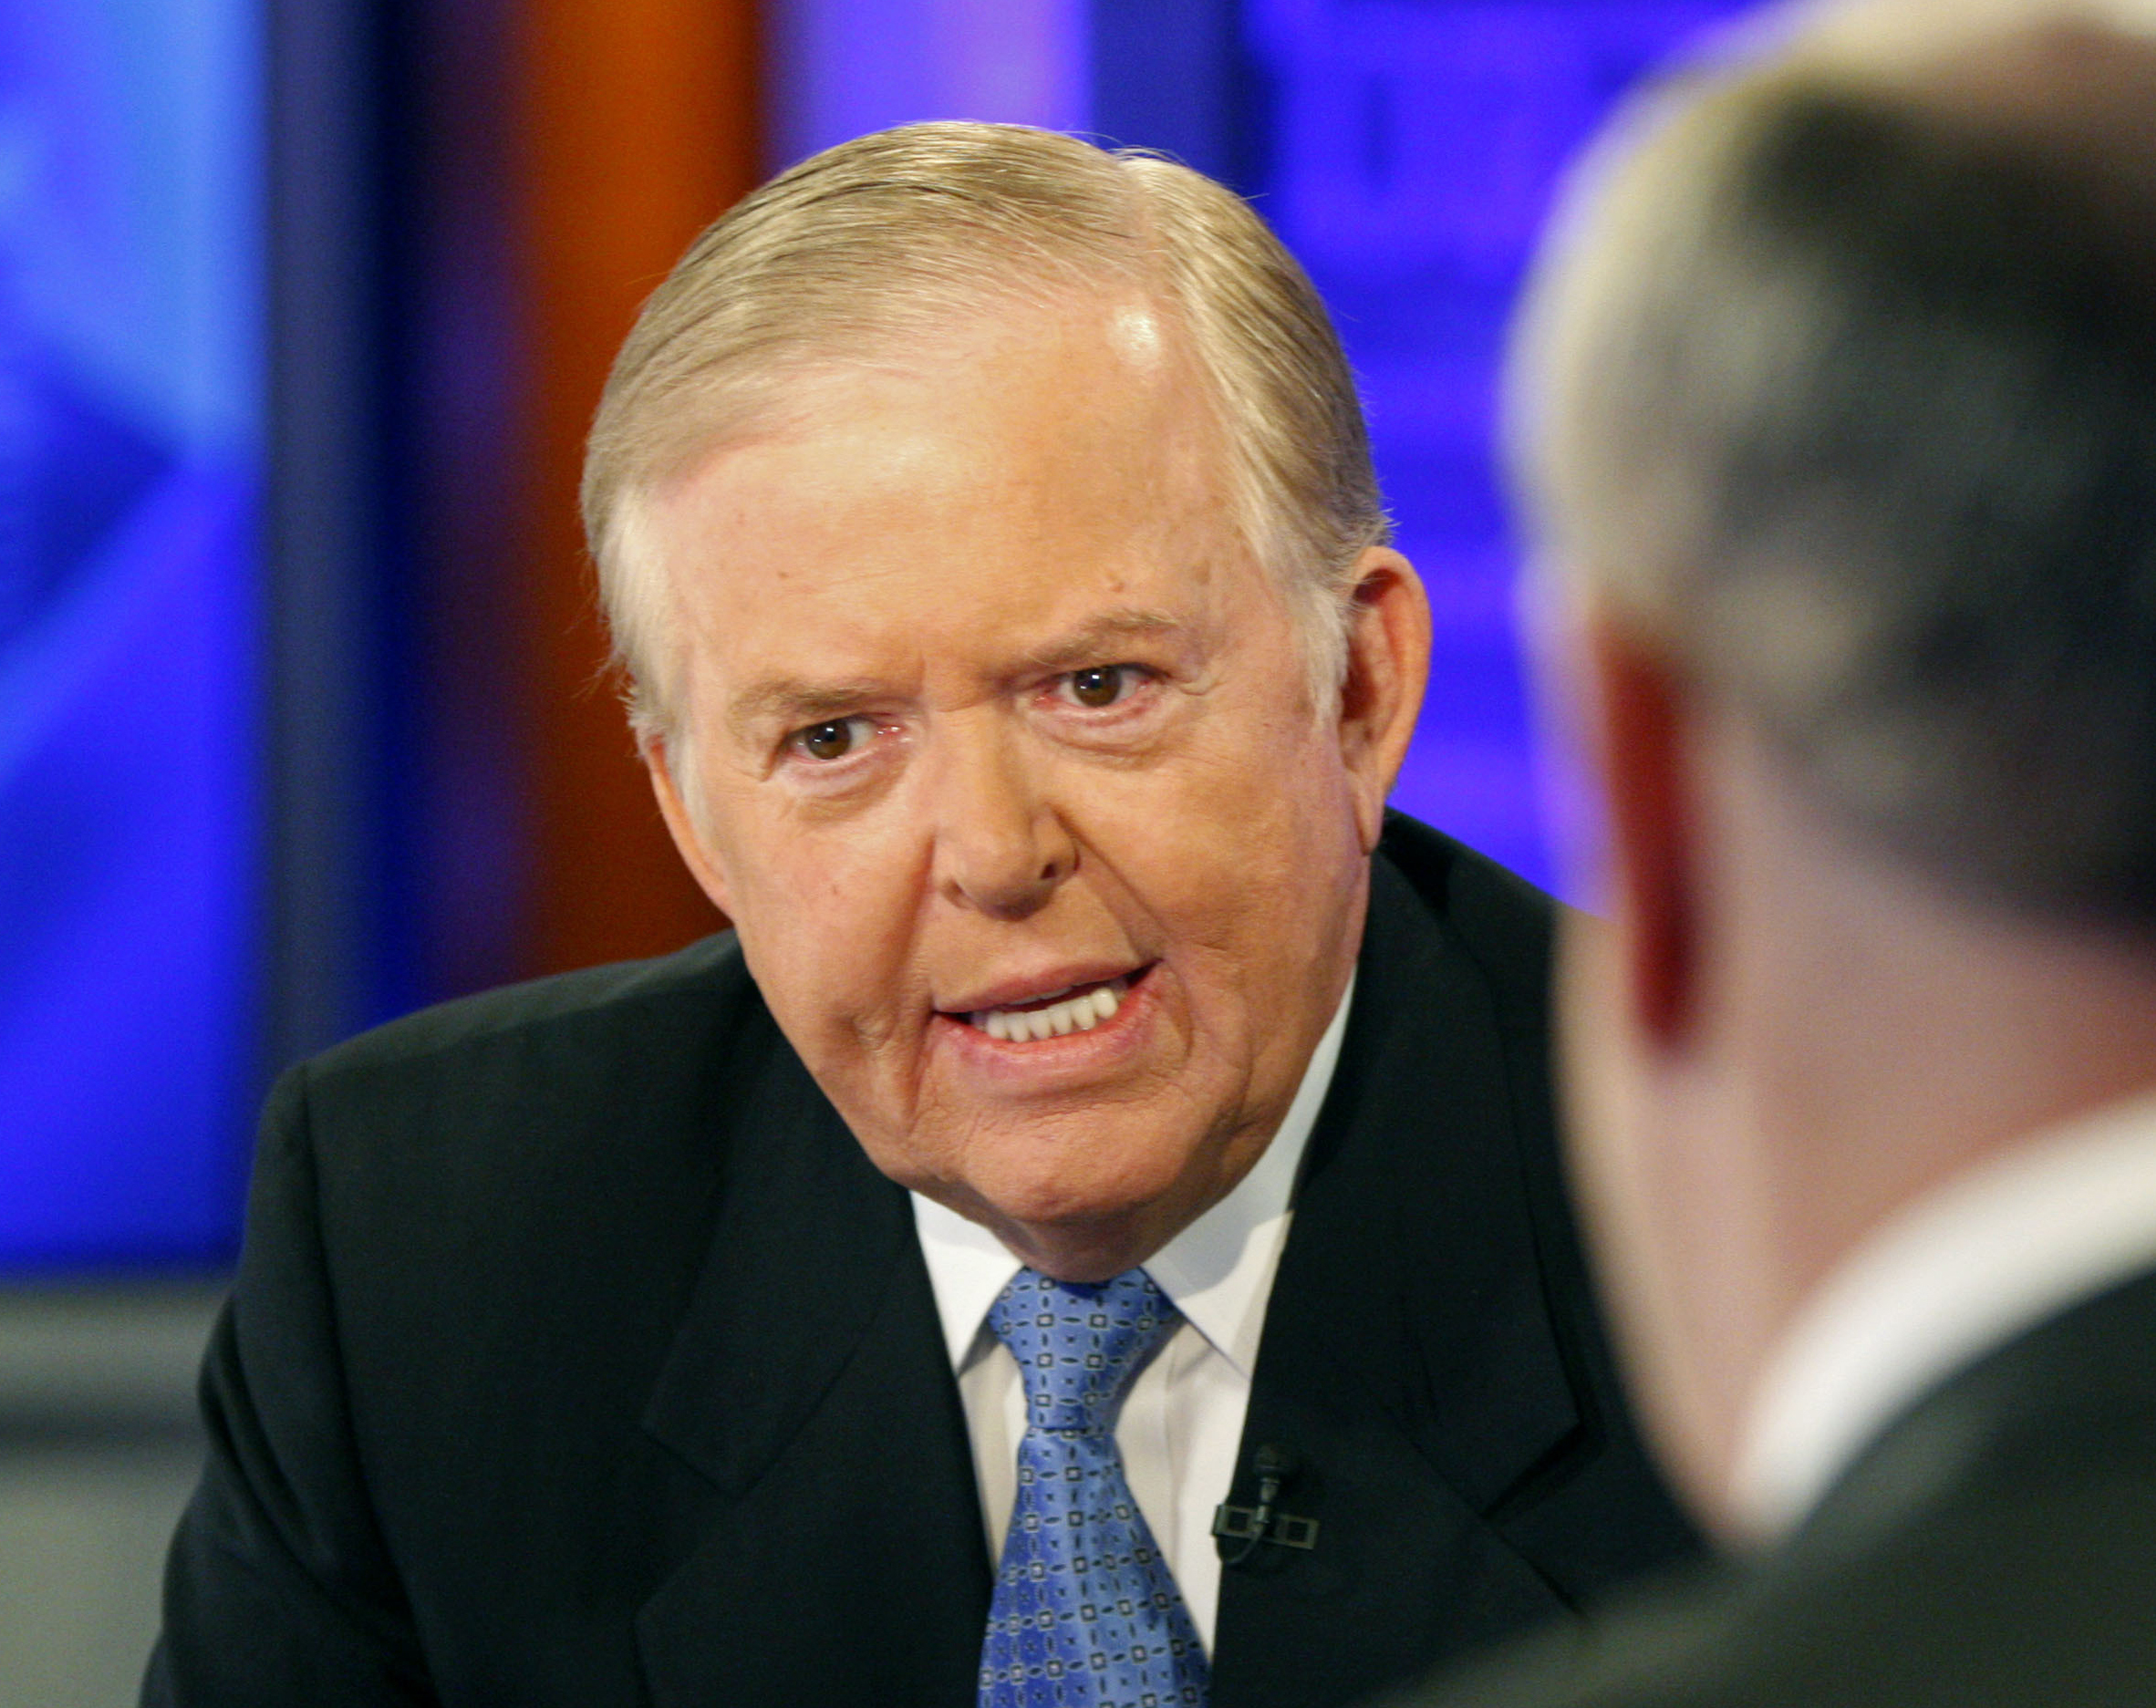 Lou Dobbs casually makes up story that 'many' illegal immigrants voted in midterms and had 'immense impact'